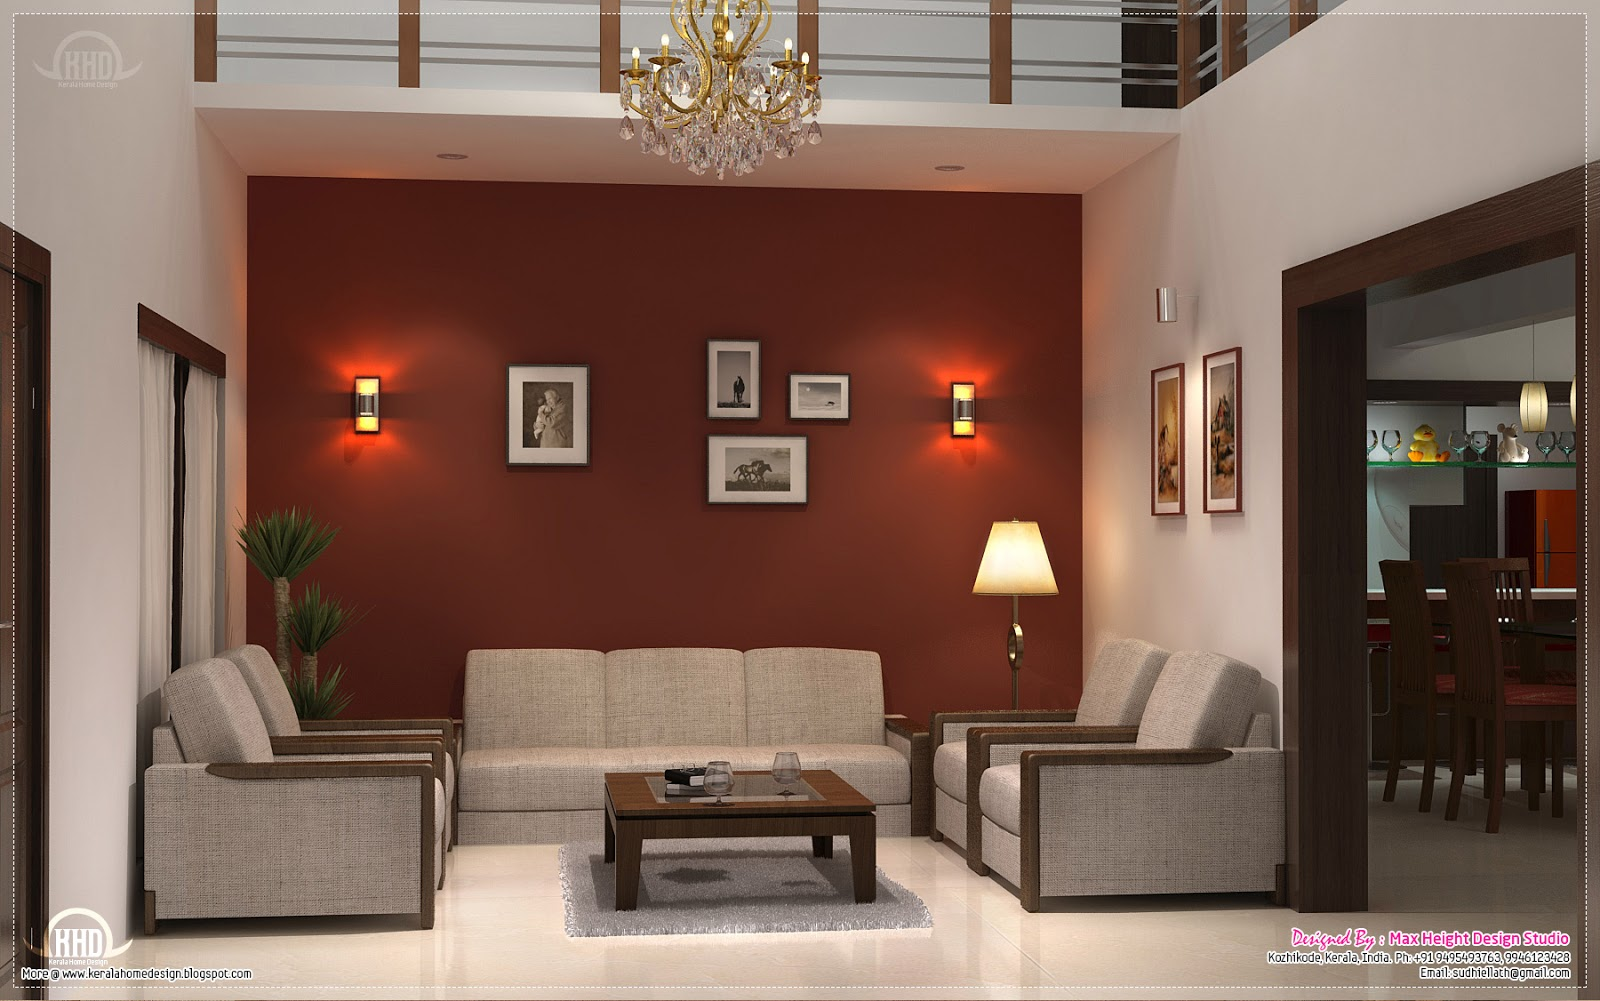 Home interior design ideas kerala home design and floor for Drawing room designs interior